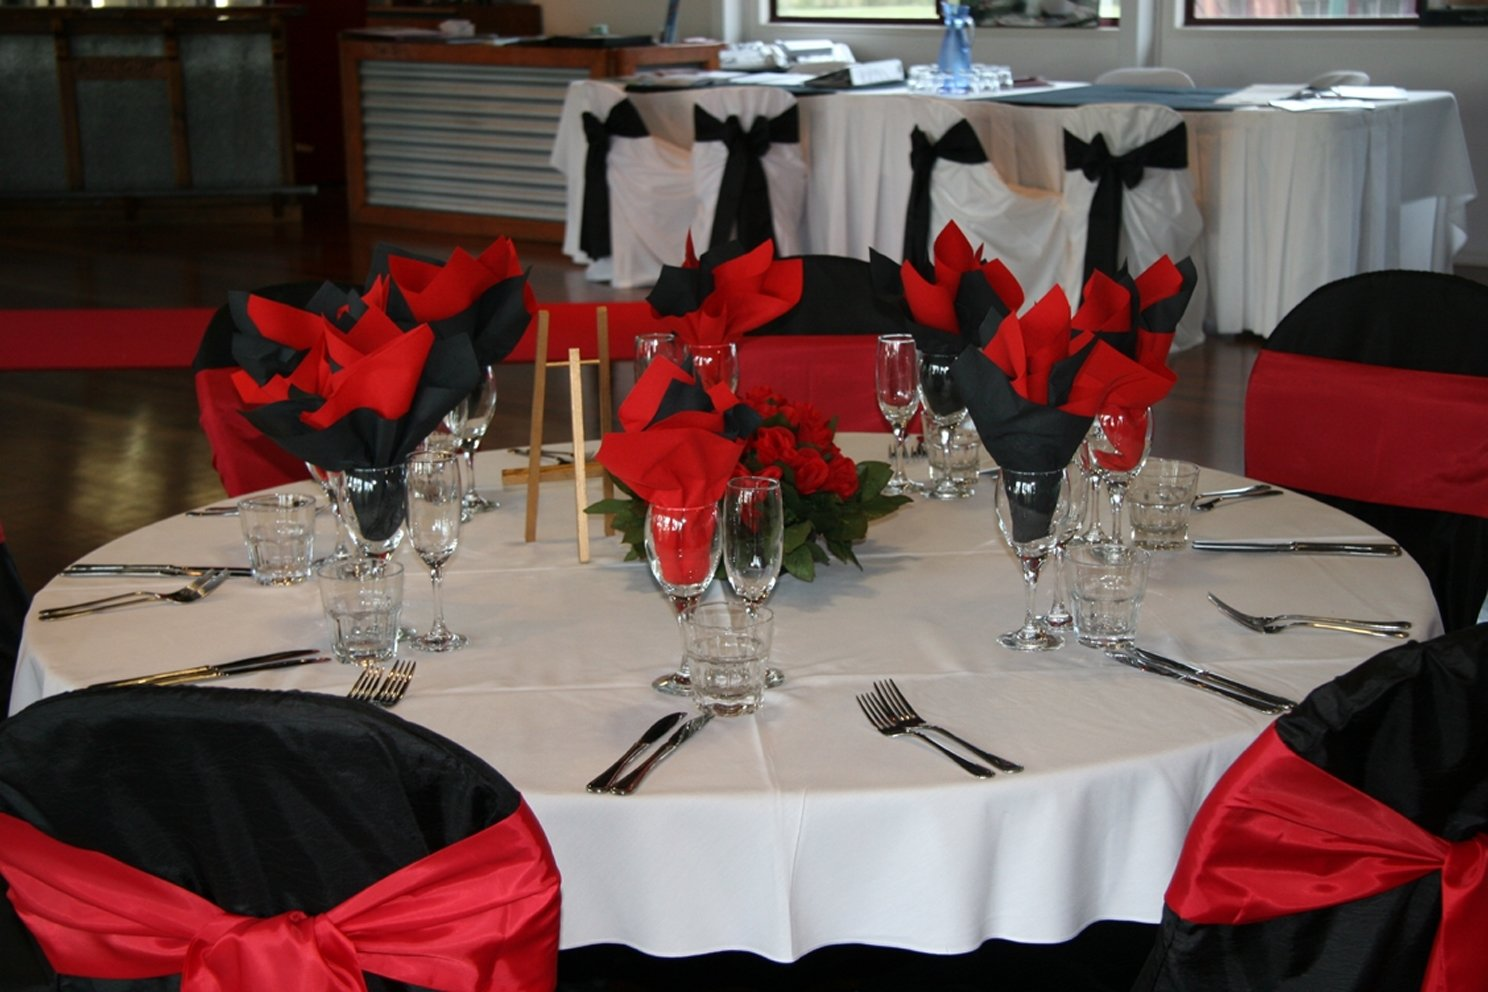 10 Fabulous Red Black And White Wedding Ideas wedding decoration beautiful dining table decoration for wedding red